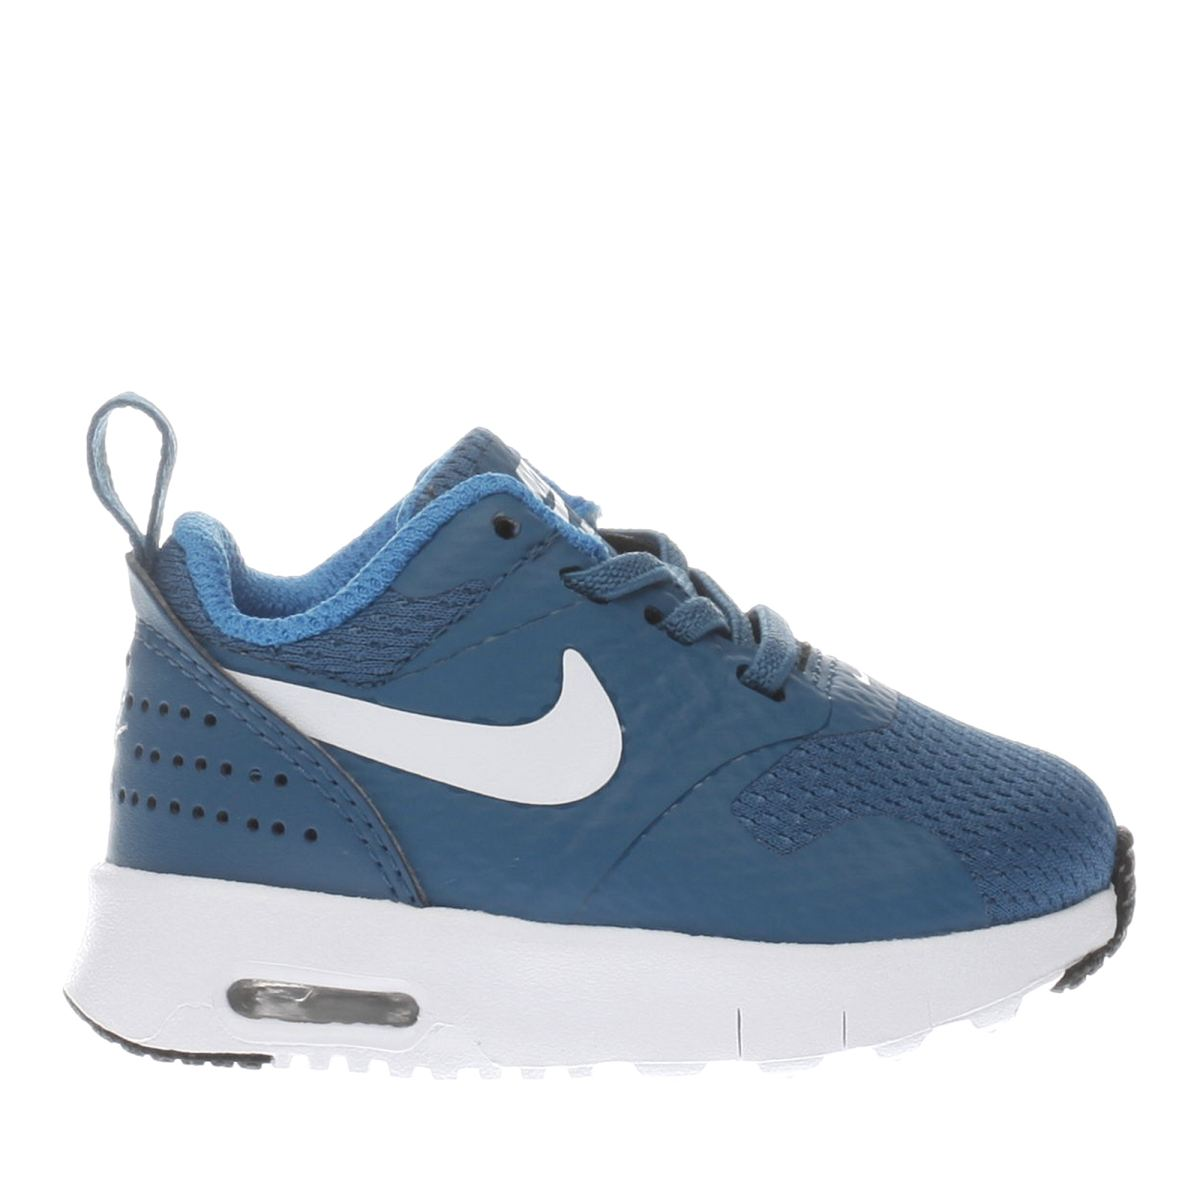 nike blue air max tavas Boys Toddler Trainers